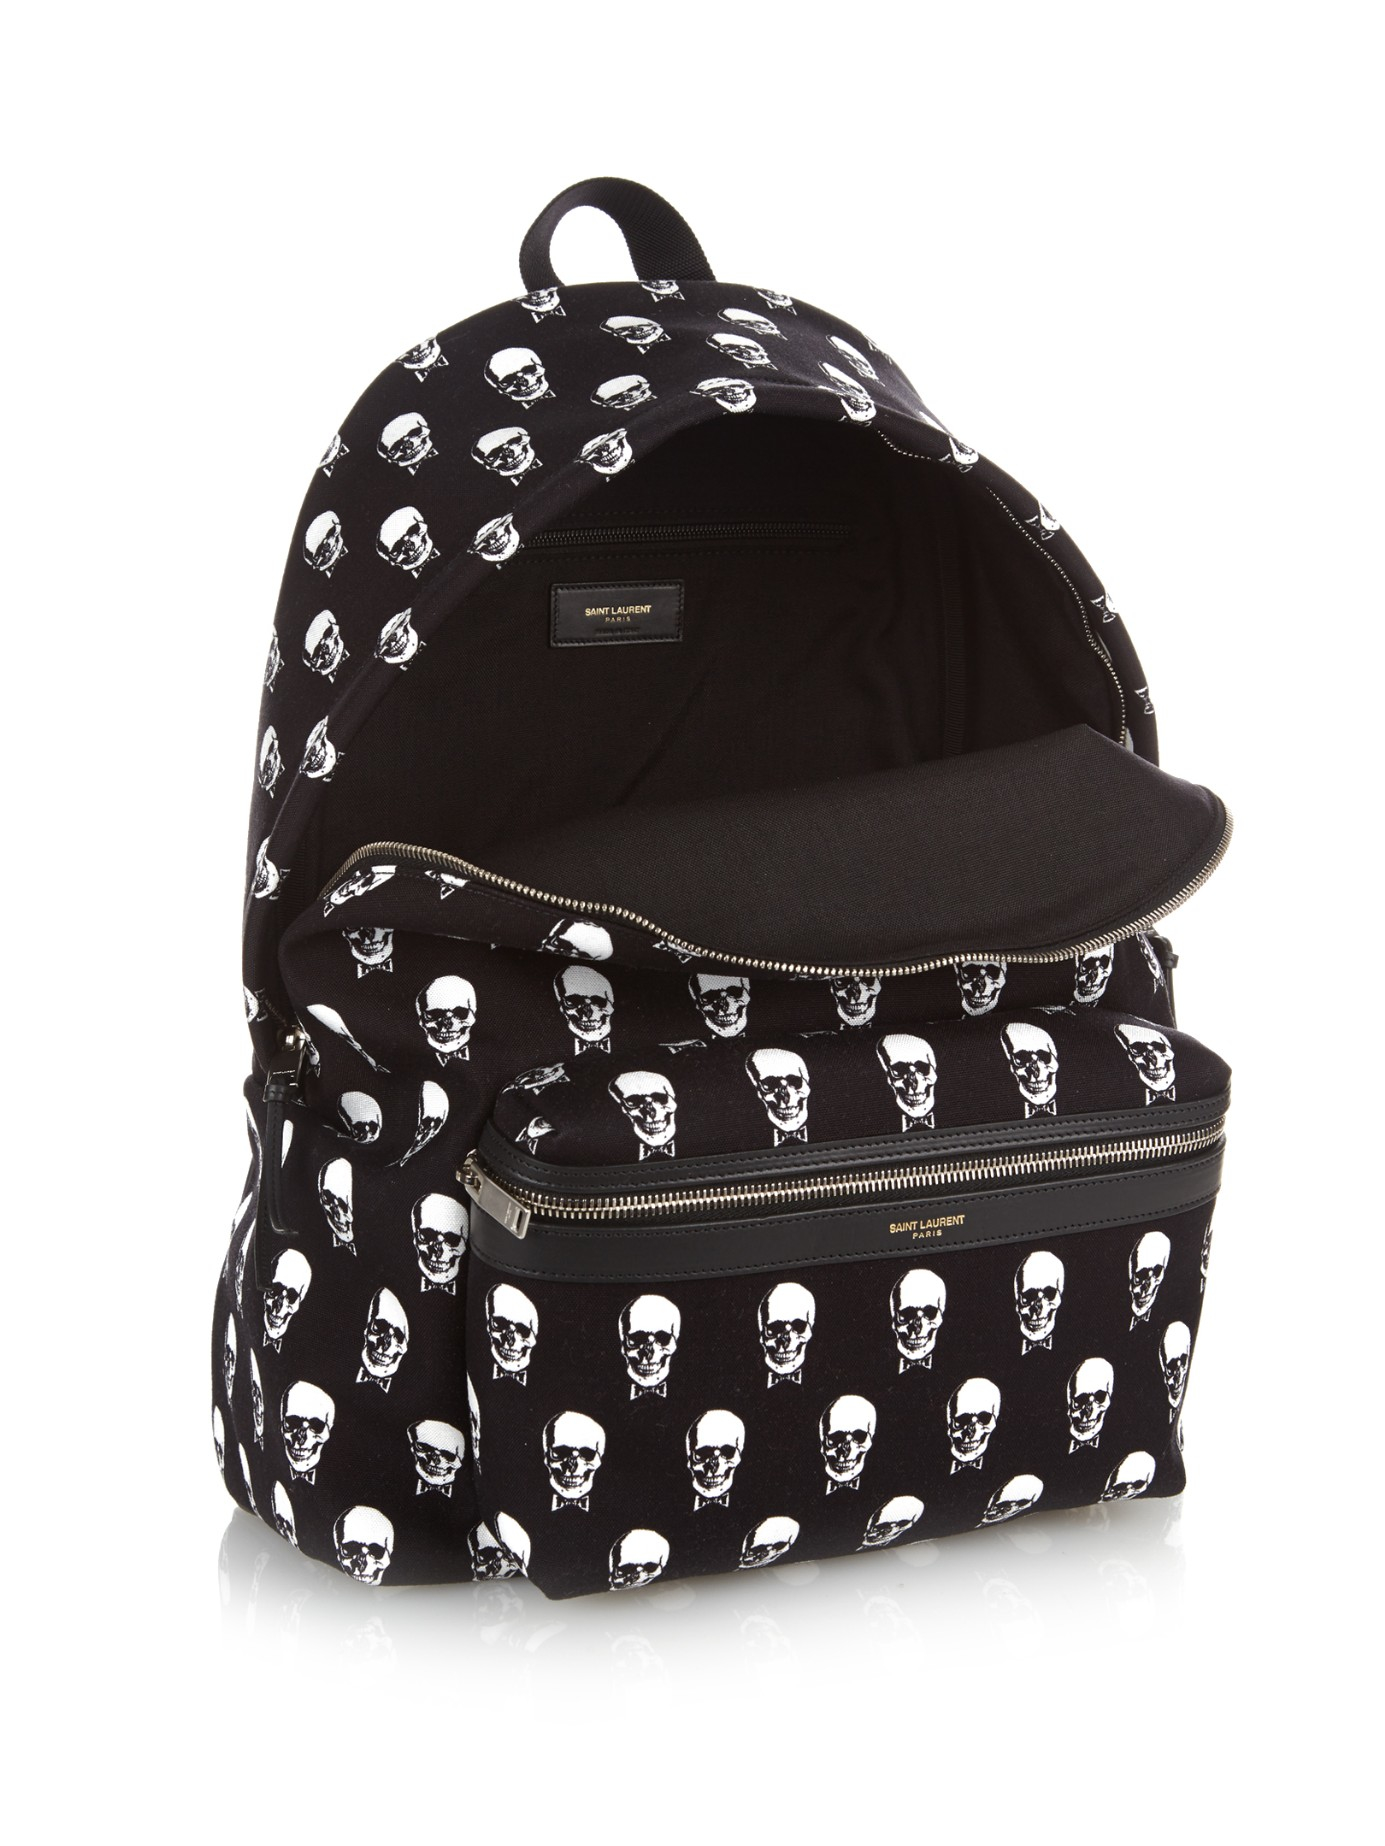 Lyst - Saint Laurent Skull-Print Canvas Backpack In Black -8671